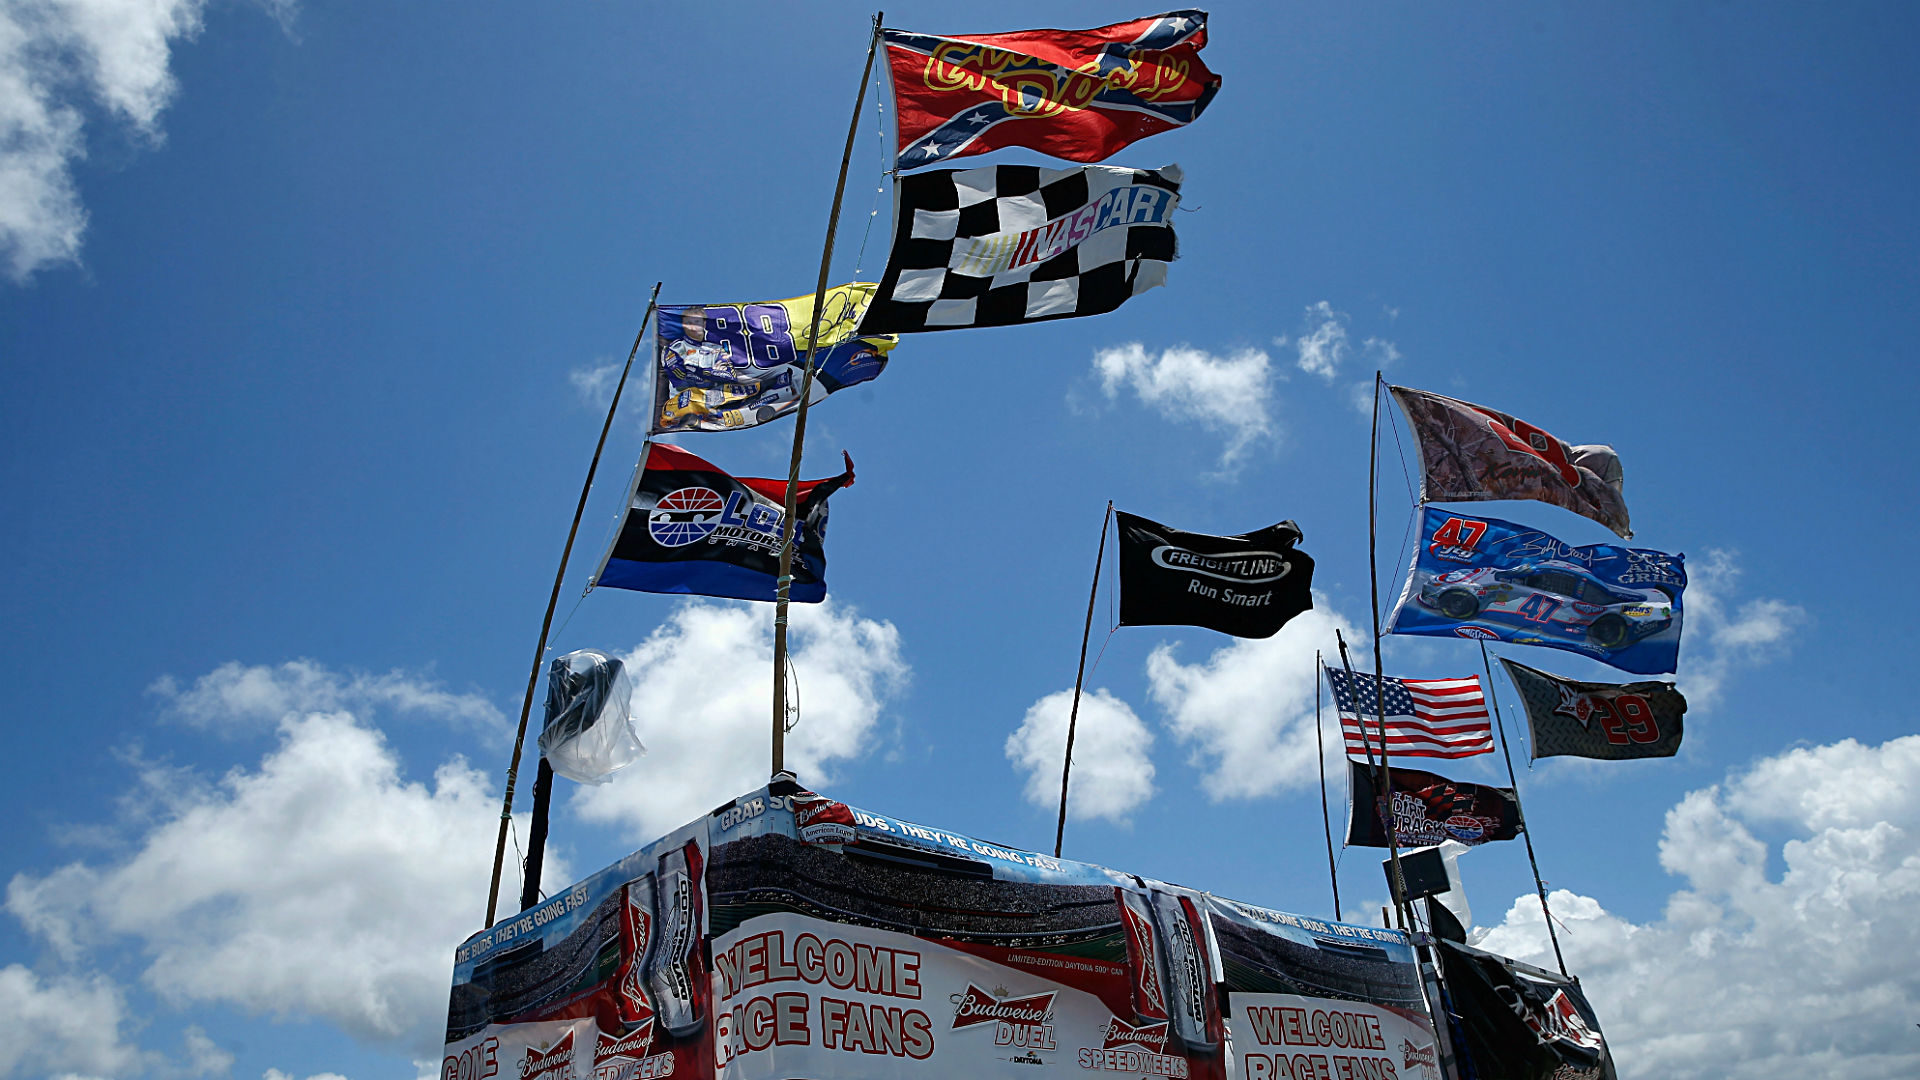 Daytona will not ban Confederate flag, offers flag trade